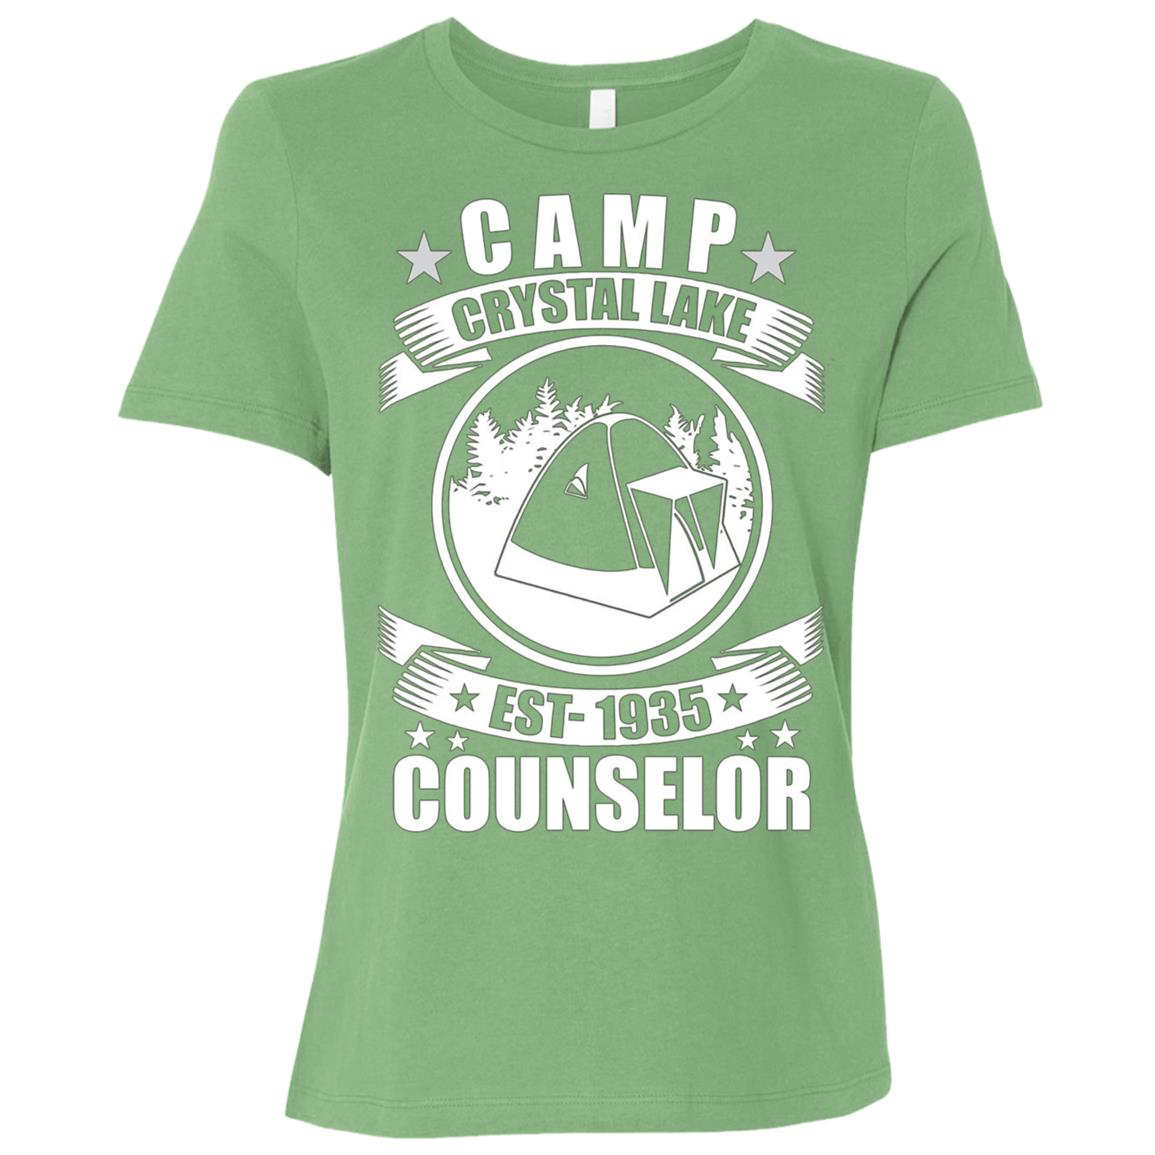 Crystal Lake Counselor Women Short Sleeve T-Shirt